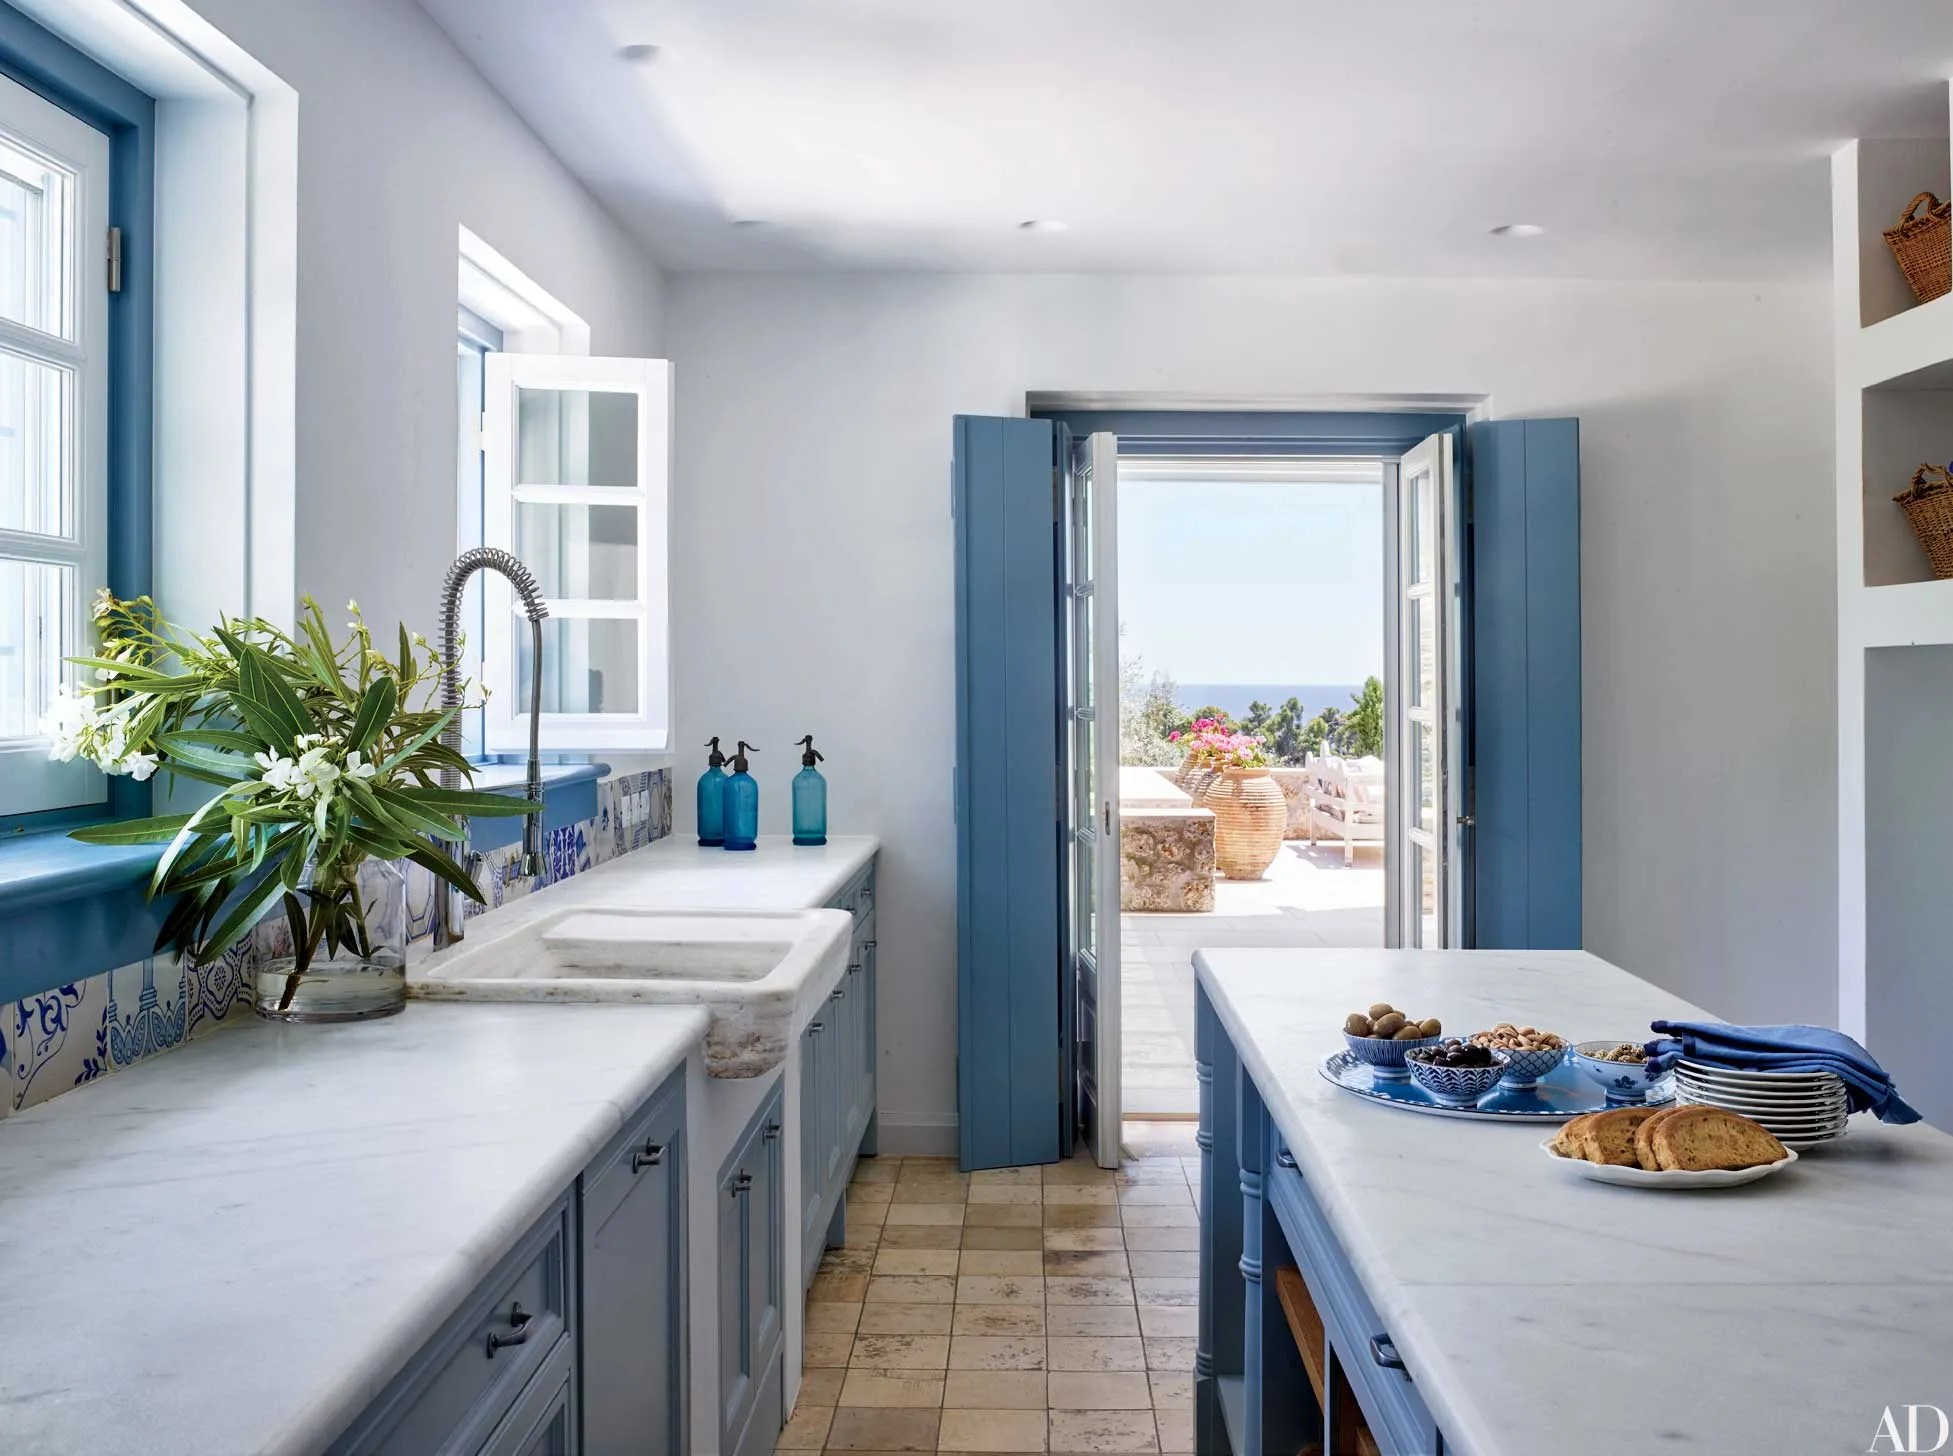 kitchen counters how to build your own cabinets clean countertops granite quartz marble more architectural digest